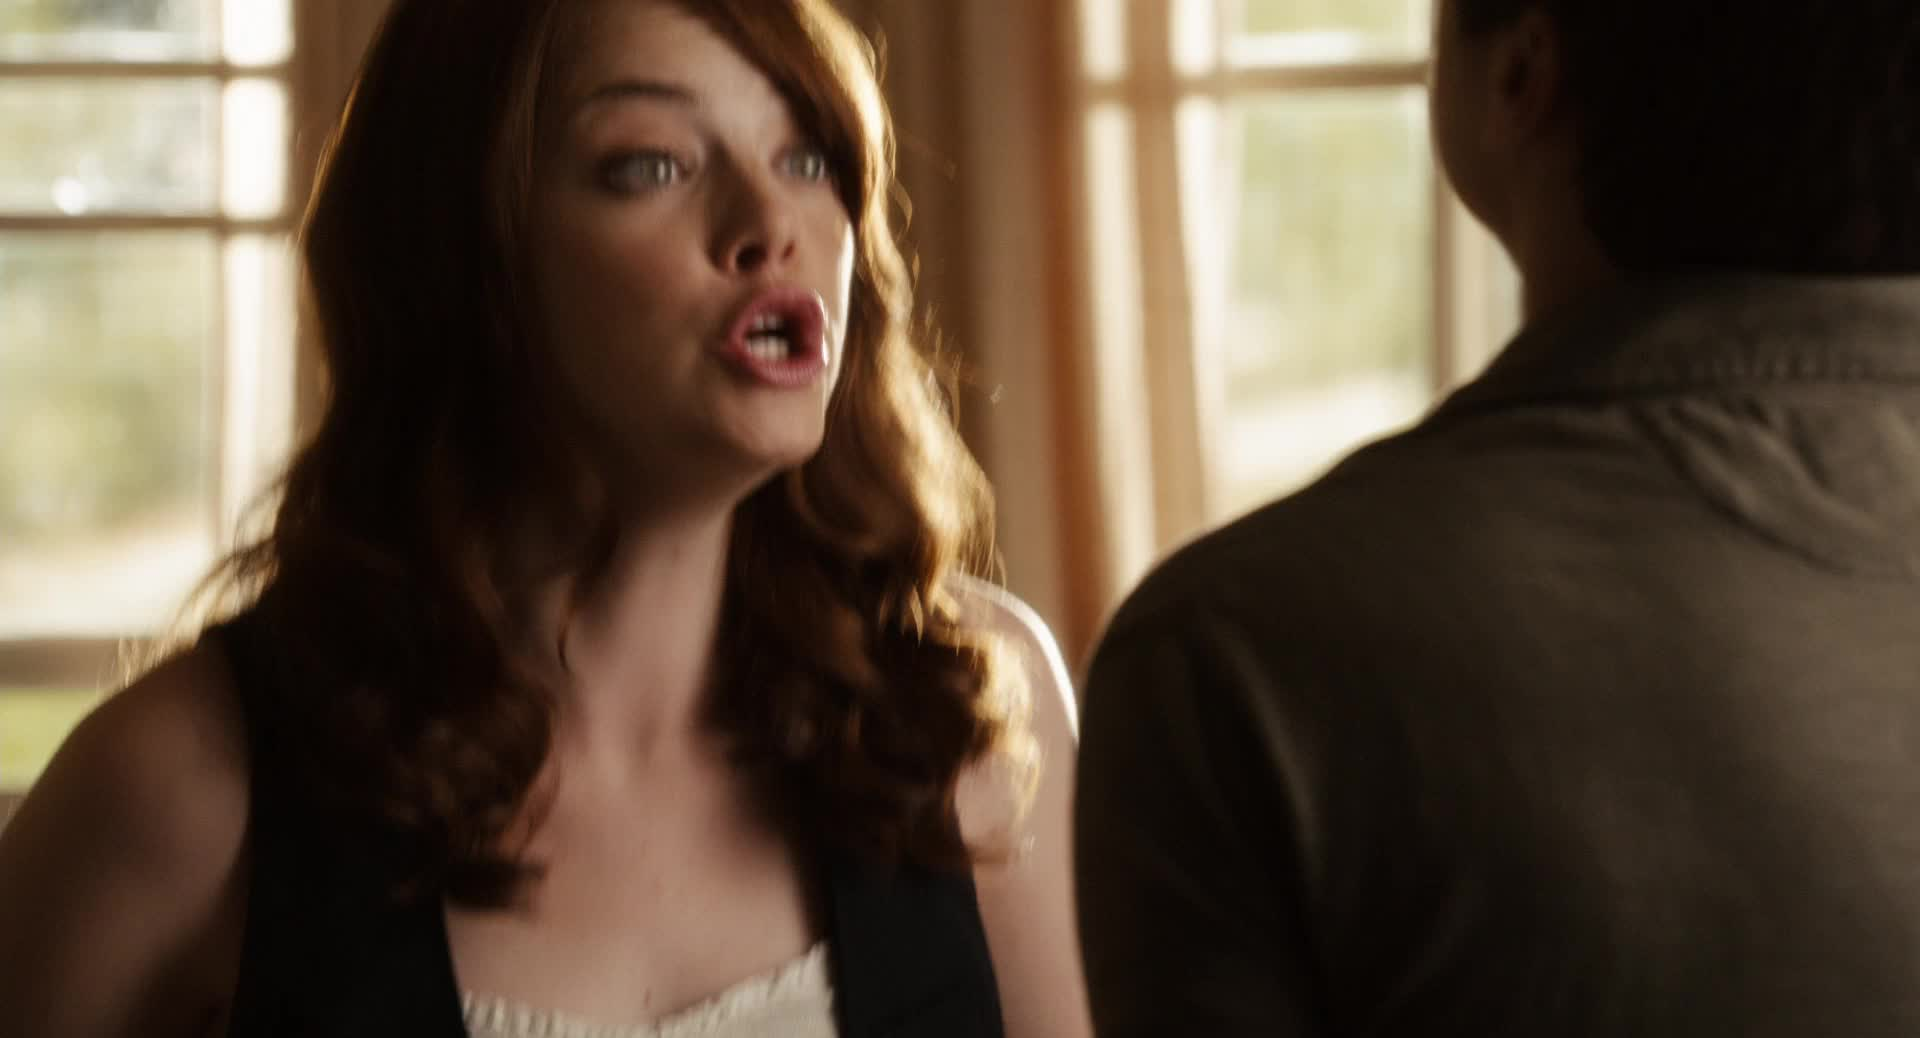 absolutely, easy a, emma, emma stone, no, no!, not, stone, NO! GIFs